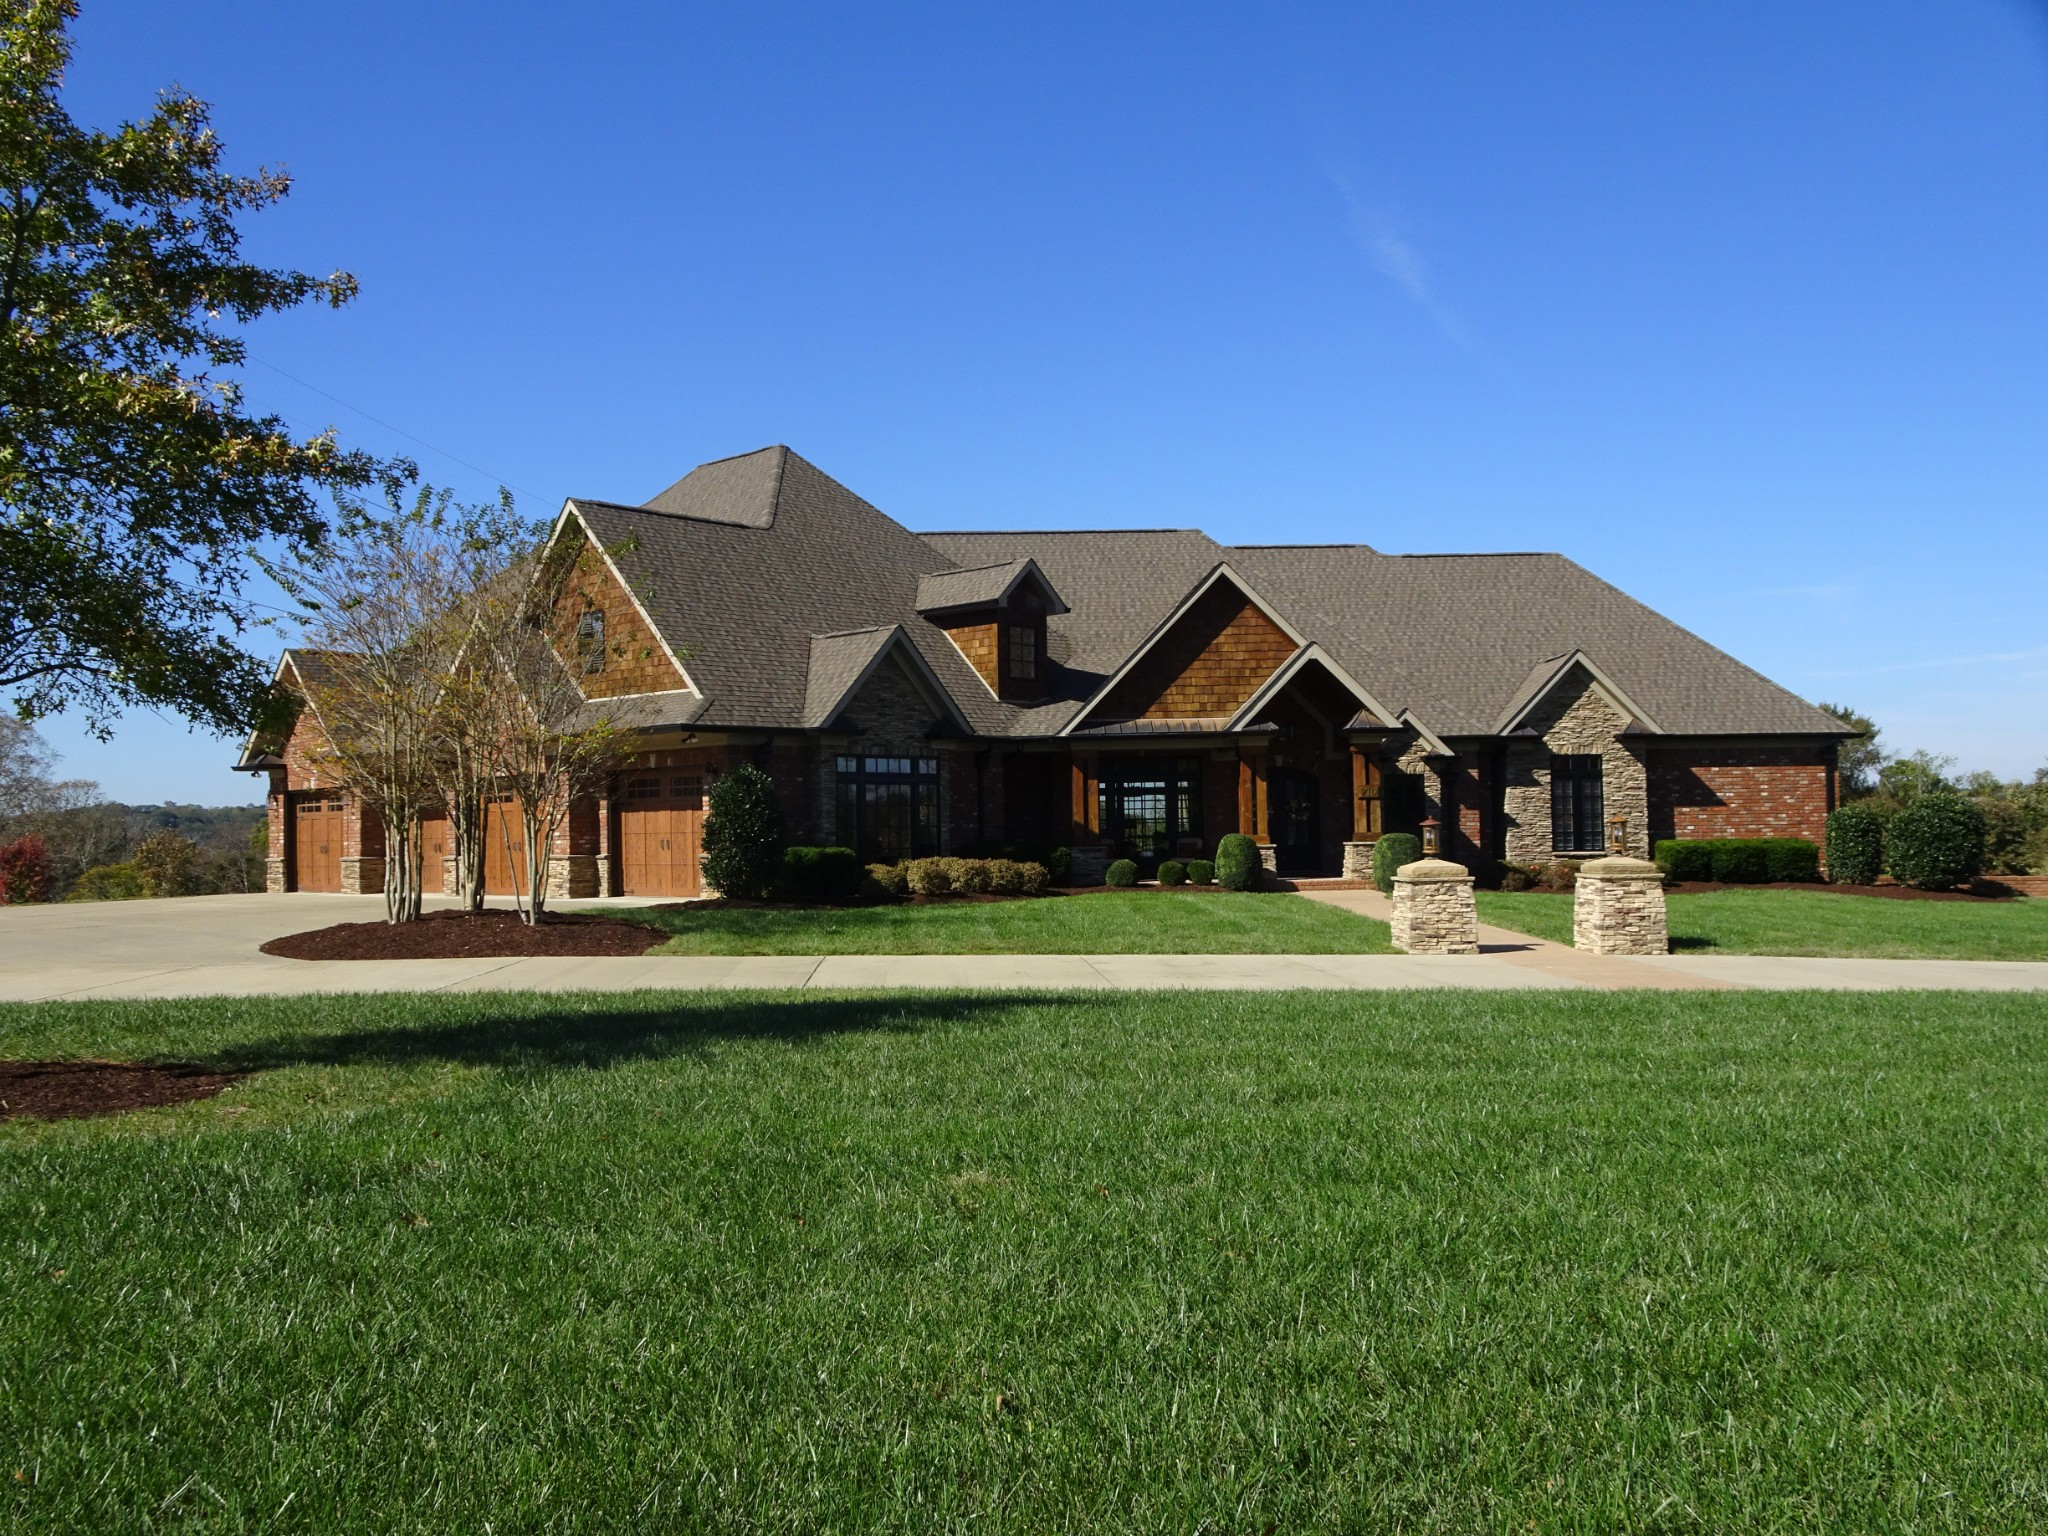 EXTRAORDINARY CUSTOM-BUILT HOME ON 7 PEACEFUL ACRES INSIDE THE CITY LIMITS WITH BEAUTIFUL ARCHITECTURAL FEATURES THROUGHOUT ! VAULTED GREATROOM W/ STONE FIREPLACE; STUNNING GOURMET KITCHEN W/ HUGE BREAKFAST BAR & MORNING ROOM; MASTER SUITE WITH 2 HUGE WALK-IN CLOSETS; FLORIDA ROOM; SEPARATE LIVING AREA W/ KITCHEN IN BS; TOO MANY AMENITIES TO LIST !